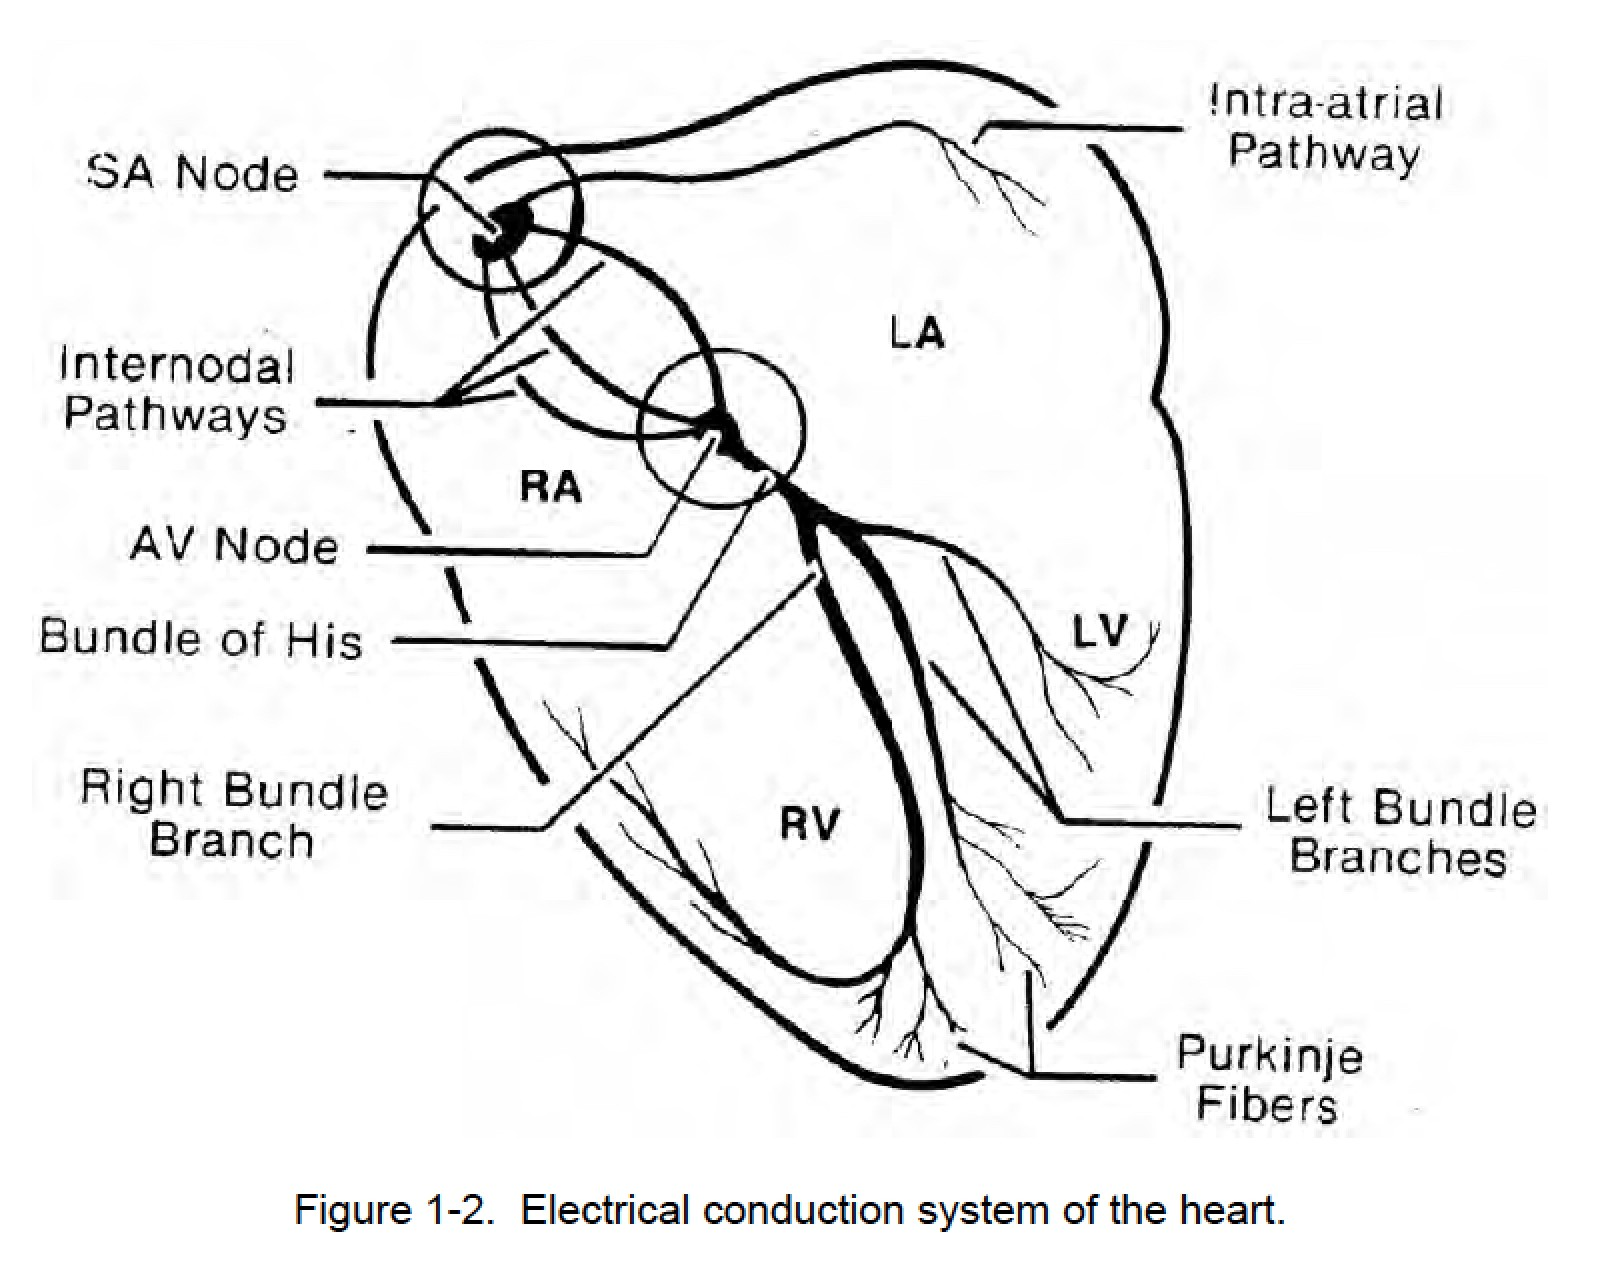 Figure 1-2. Electrical conduction system of the heart